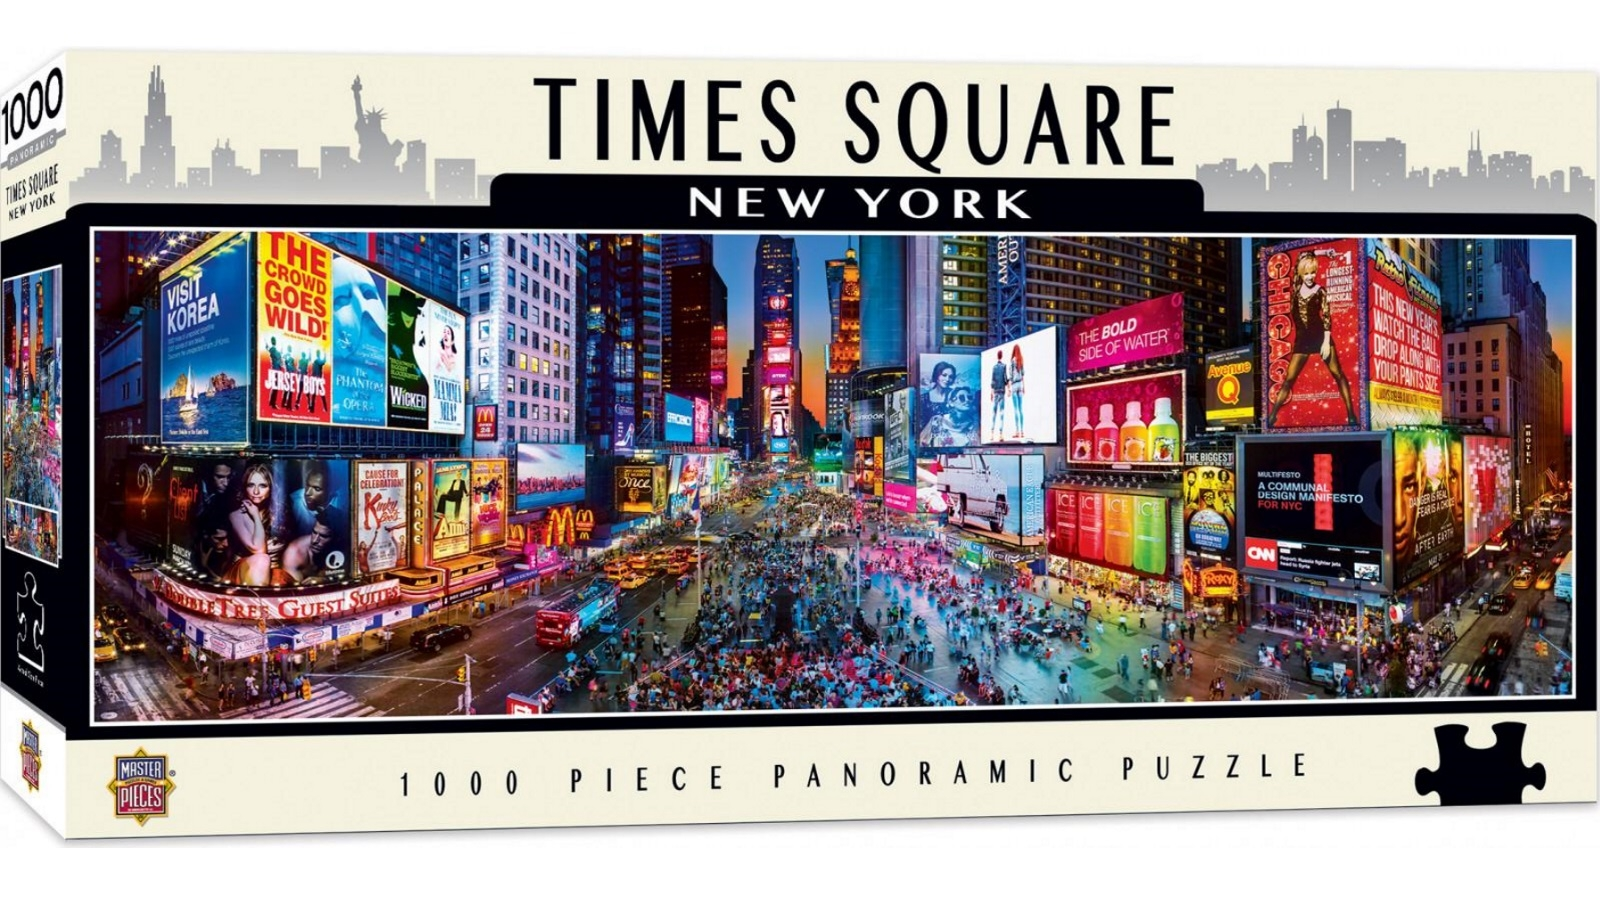 Educational Jigsaw Puzzles 1000 Piece New York Times Square Decor Puzzle Contemporary Puzzles Jigsaw